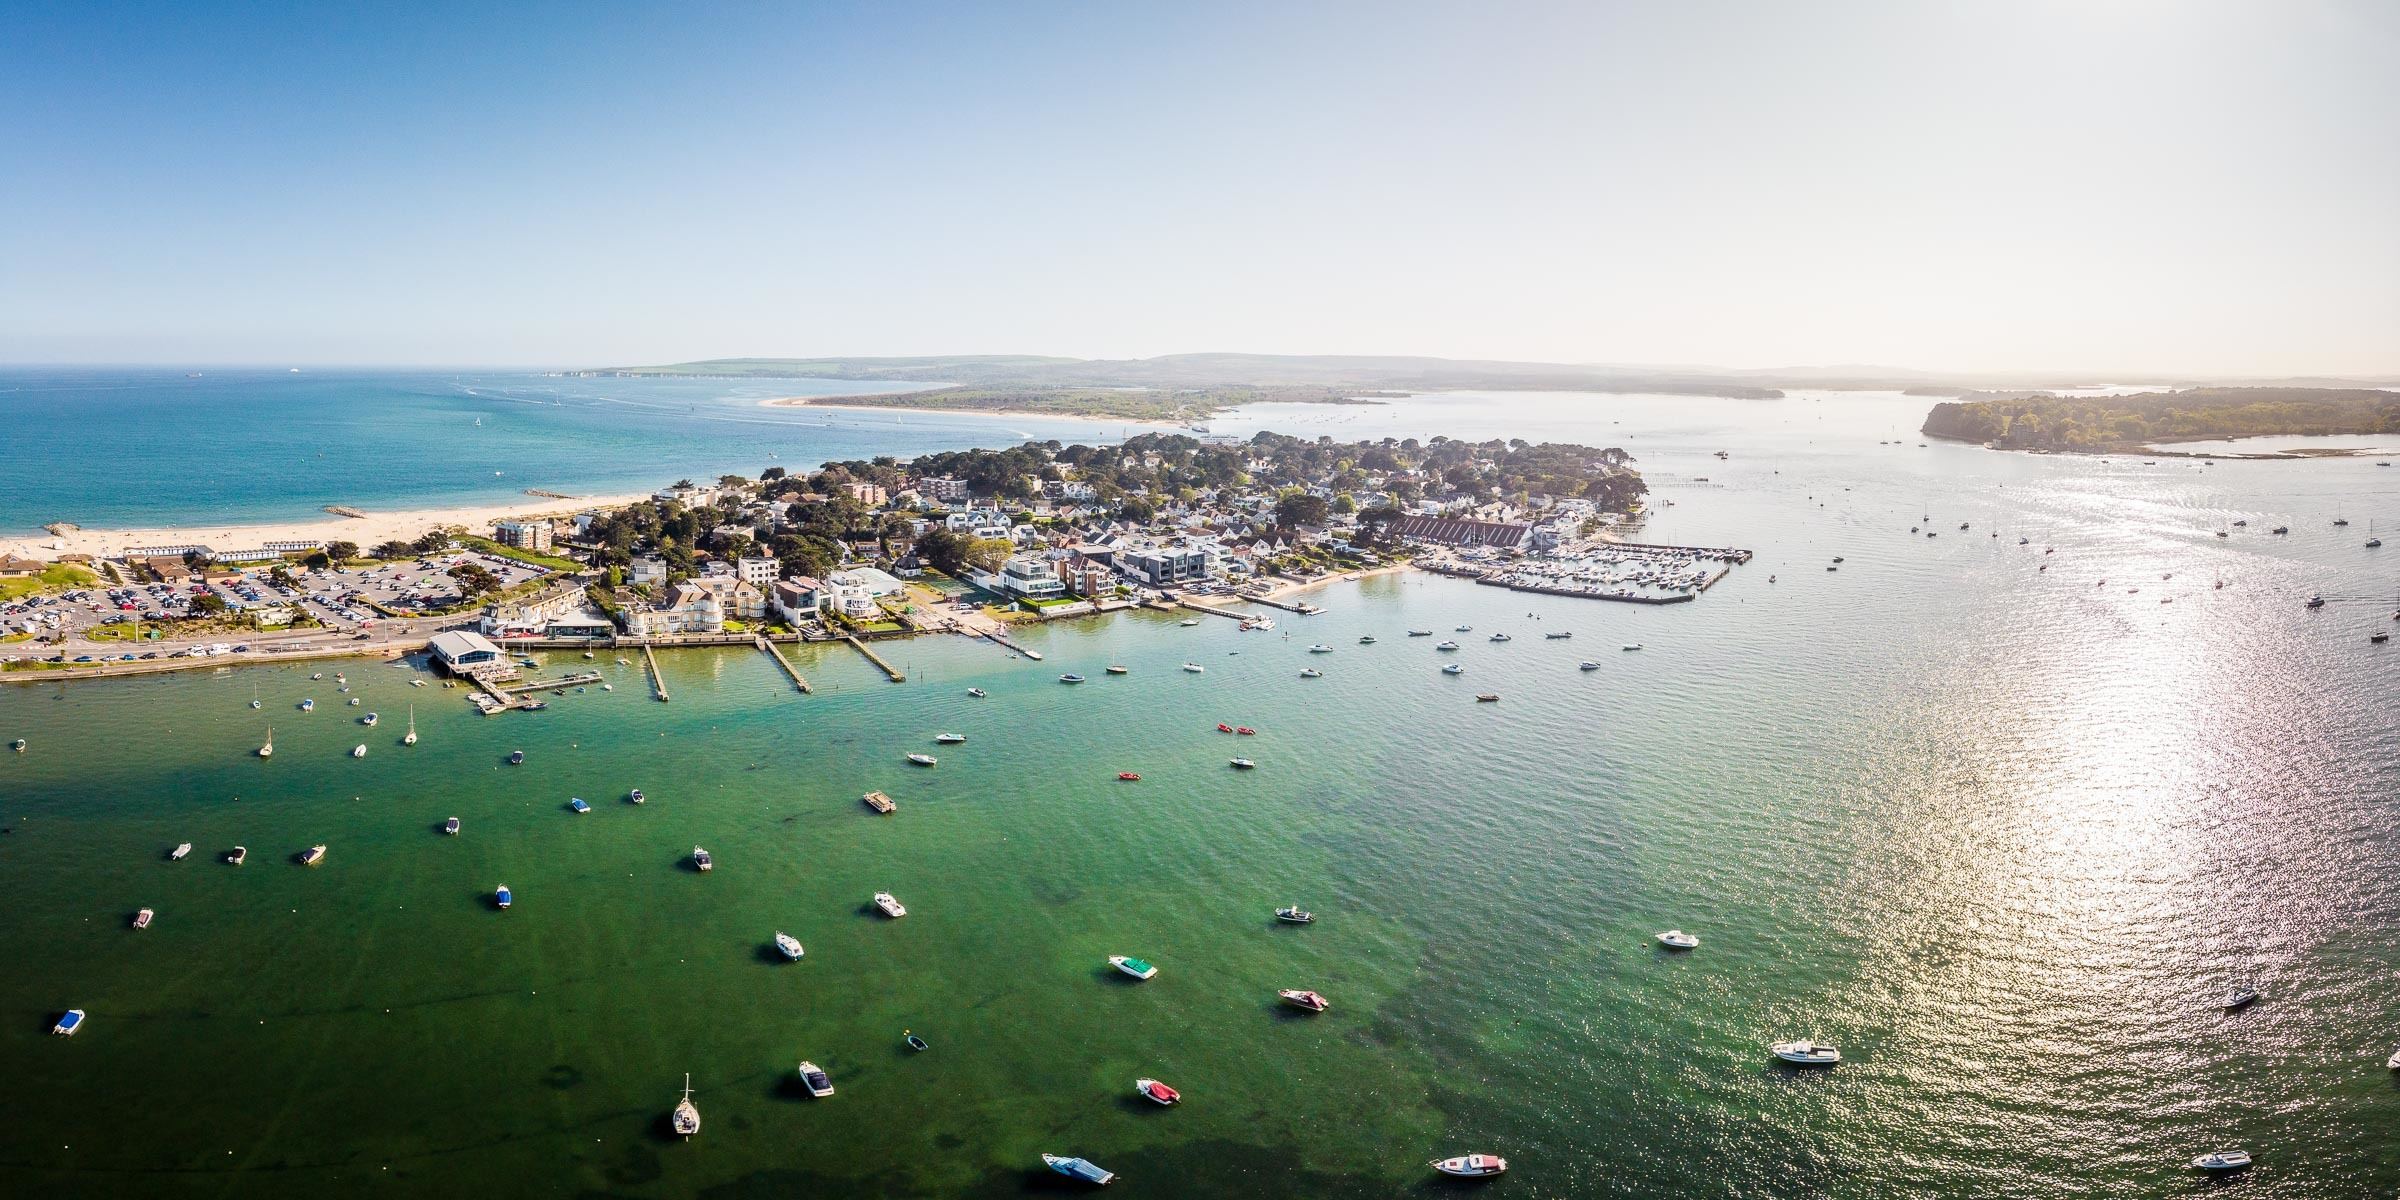 Sandbanks and Poole harbour in Dorset